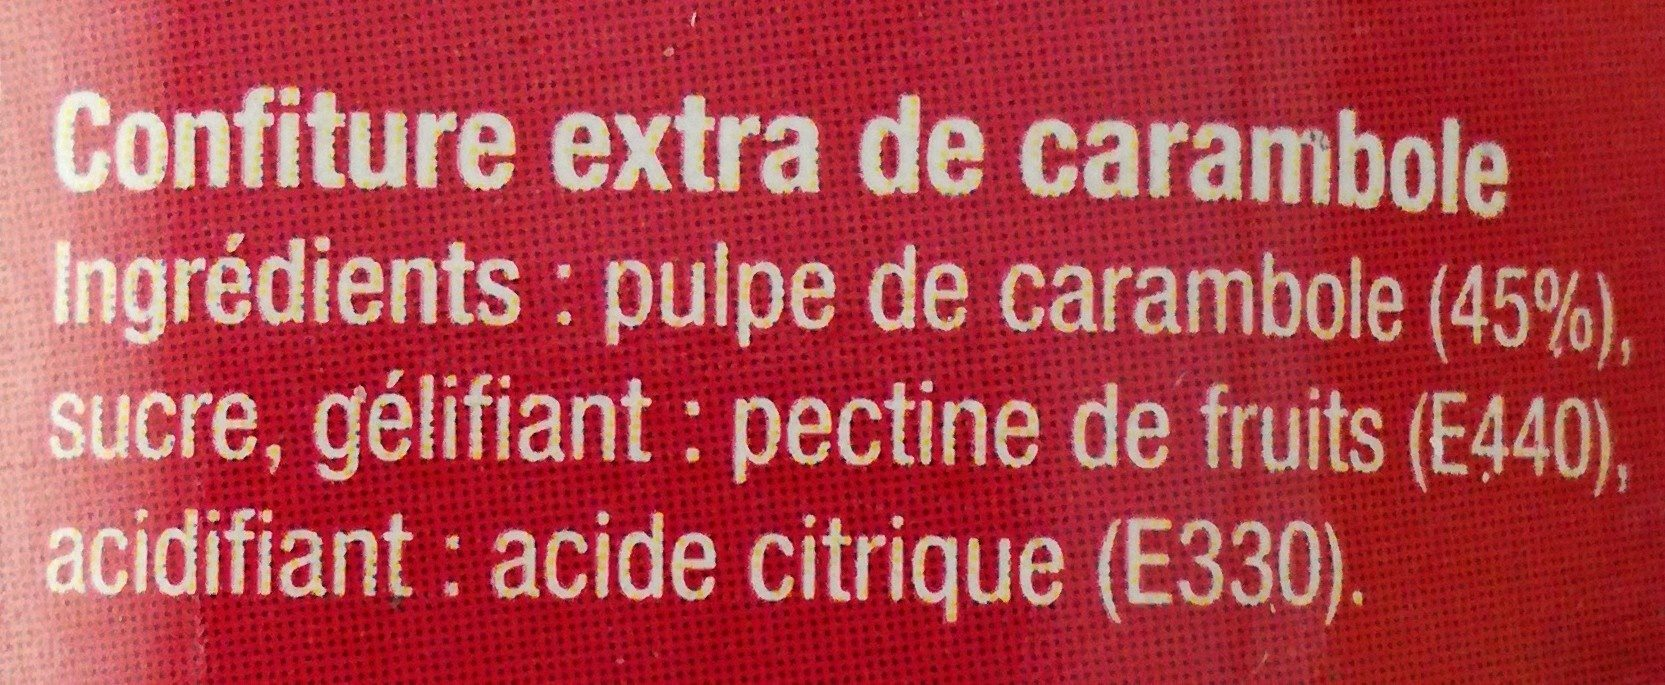 Confiture extra Carambole - Ingredients - fr